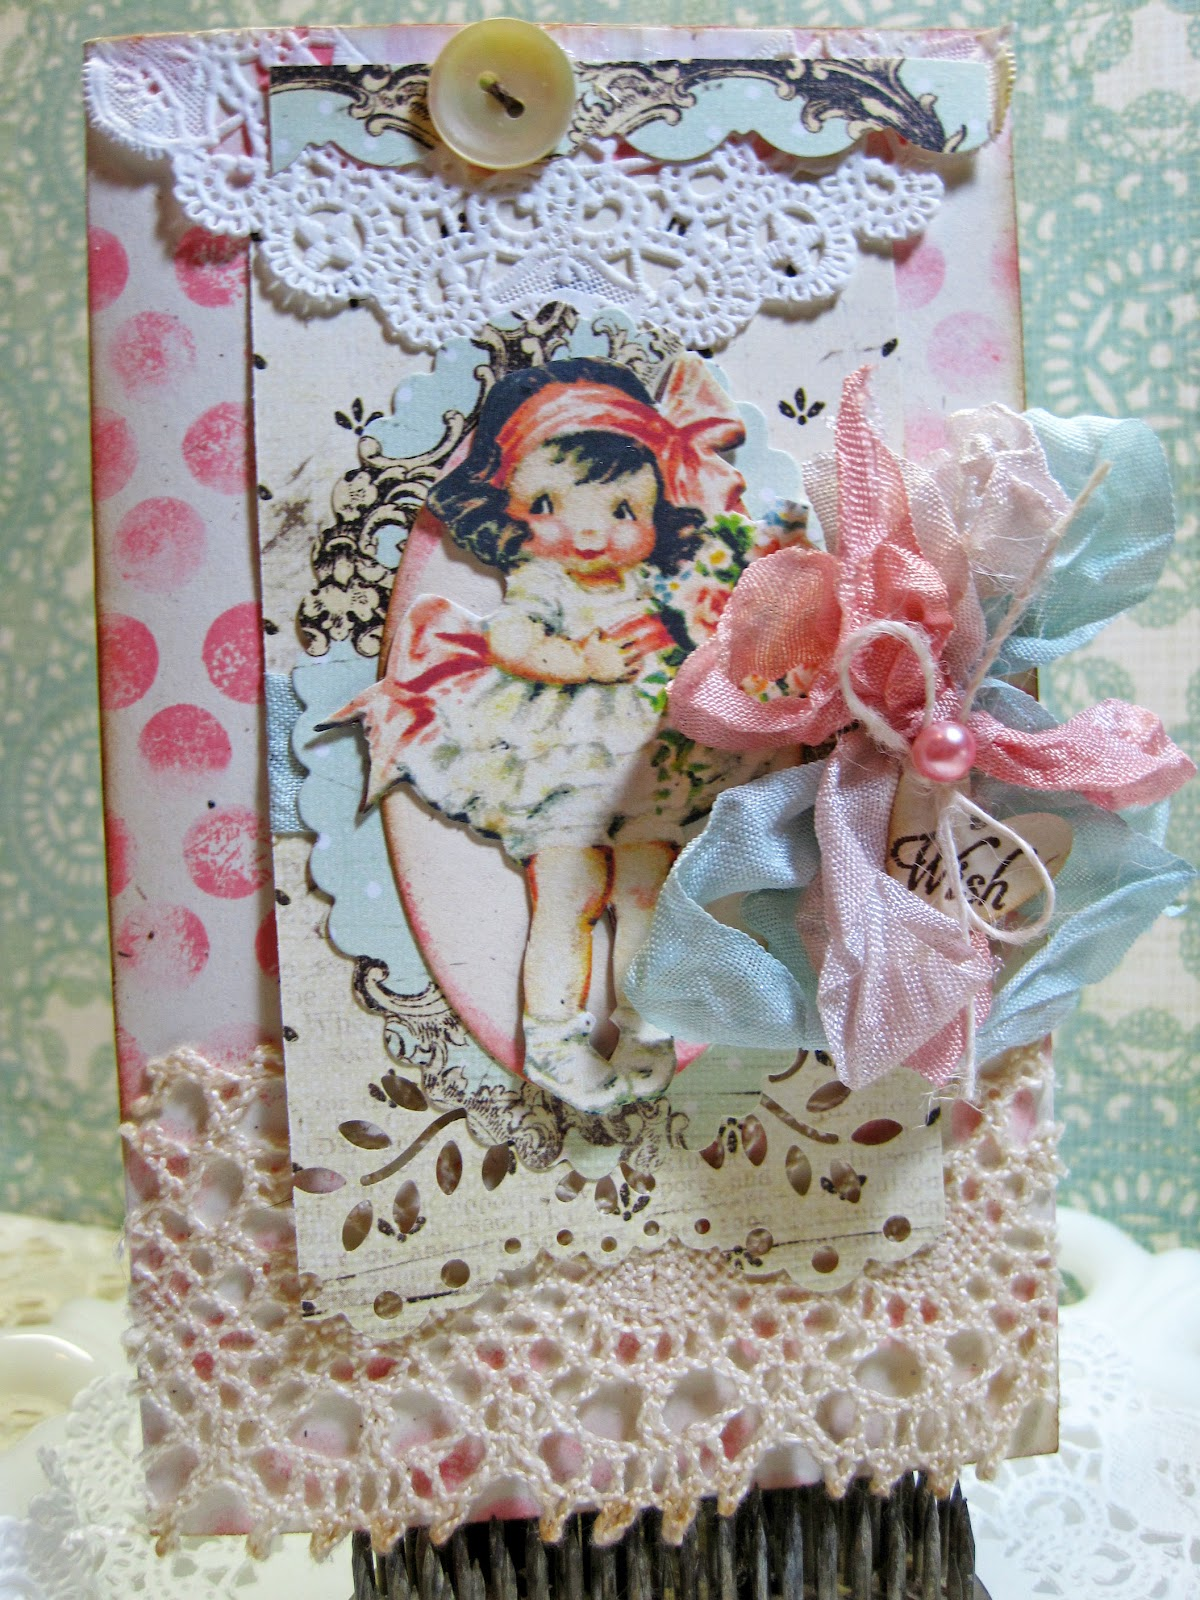 Daddy Asked For A Card To Give Mom On The Same Day I Got This Little Cutie In Mail Thought It Must Be Sign Shes Vintage Place